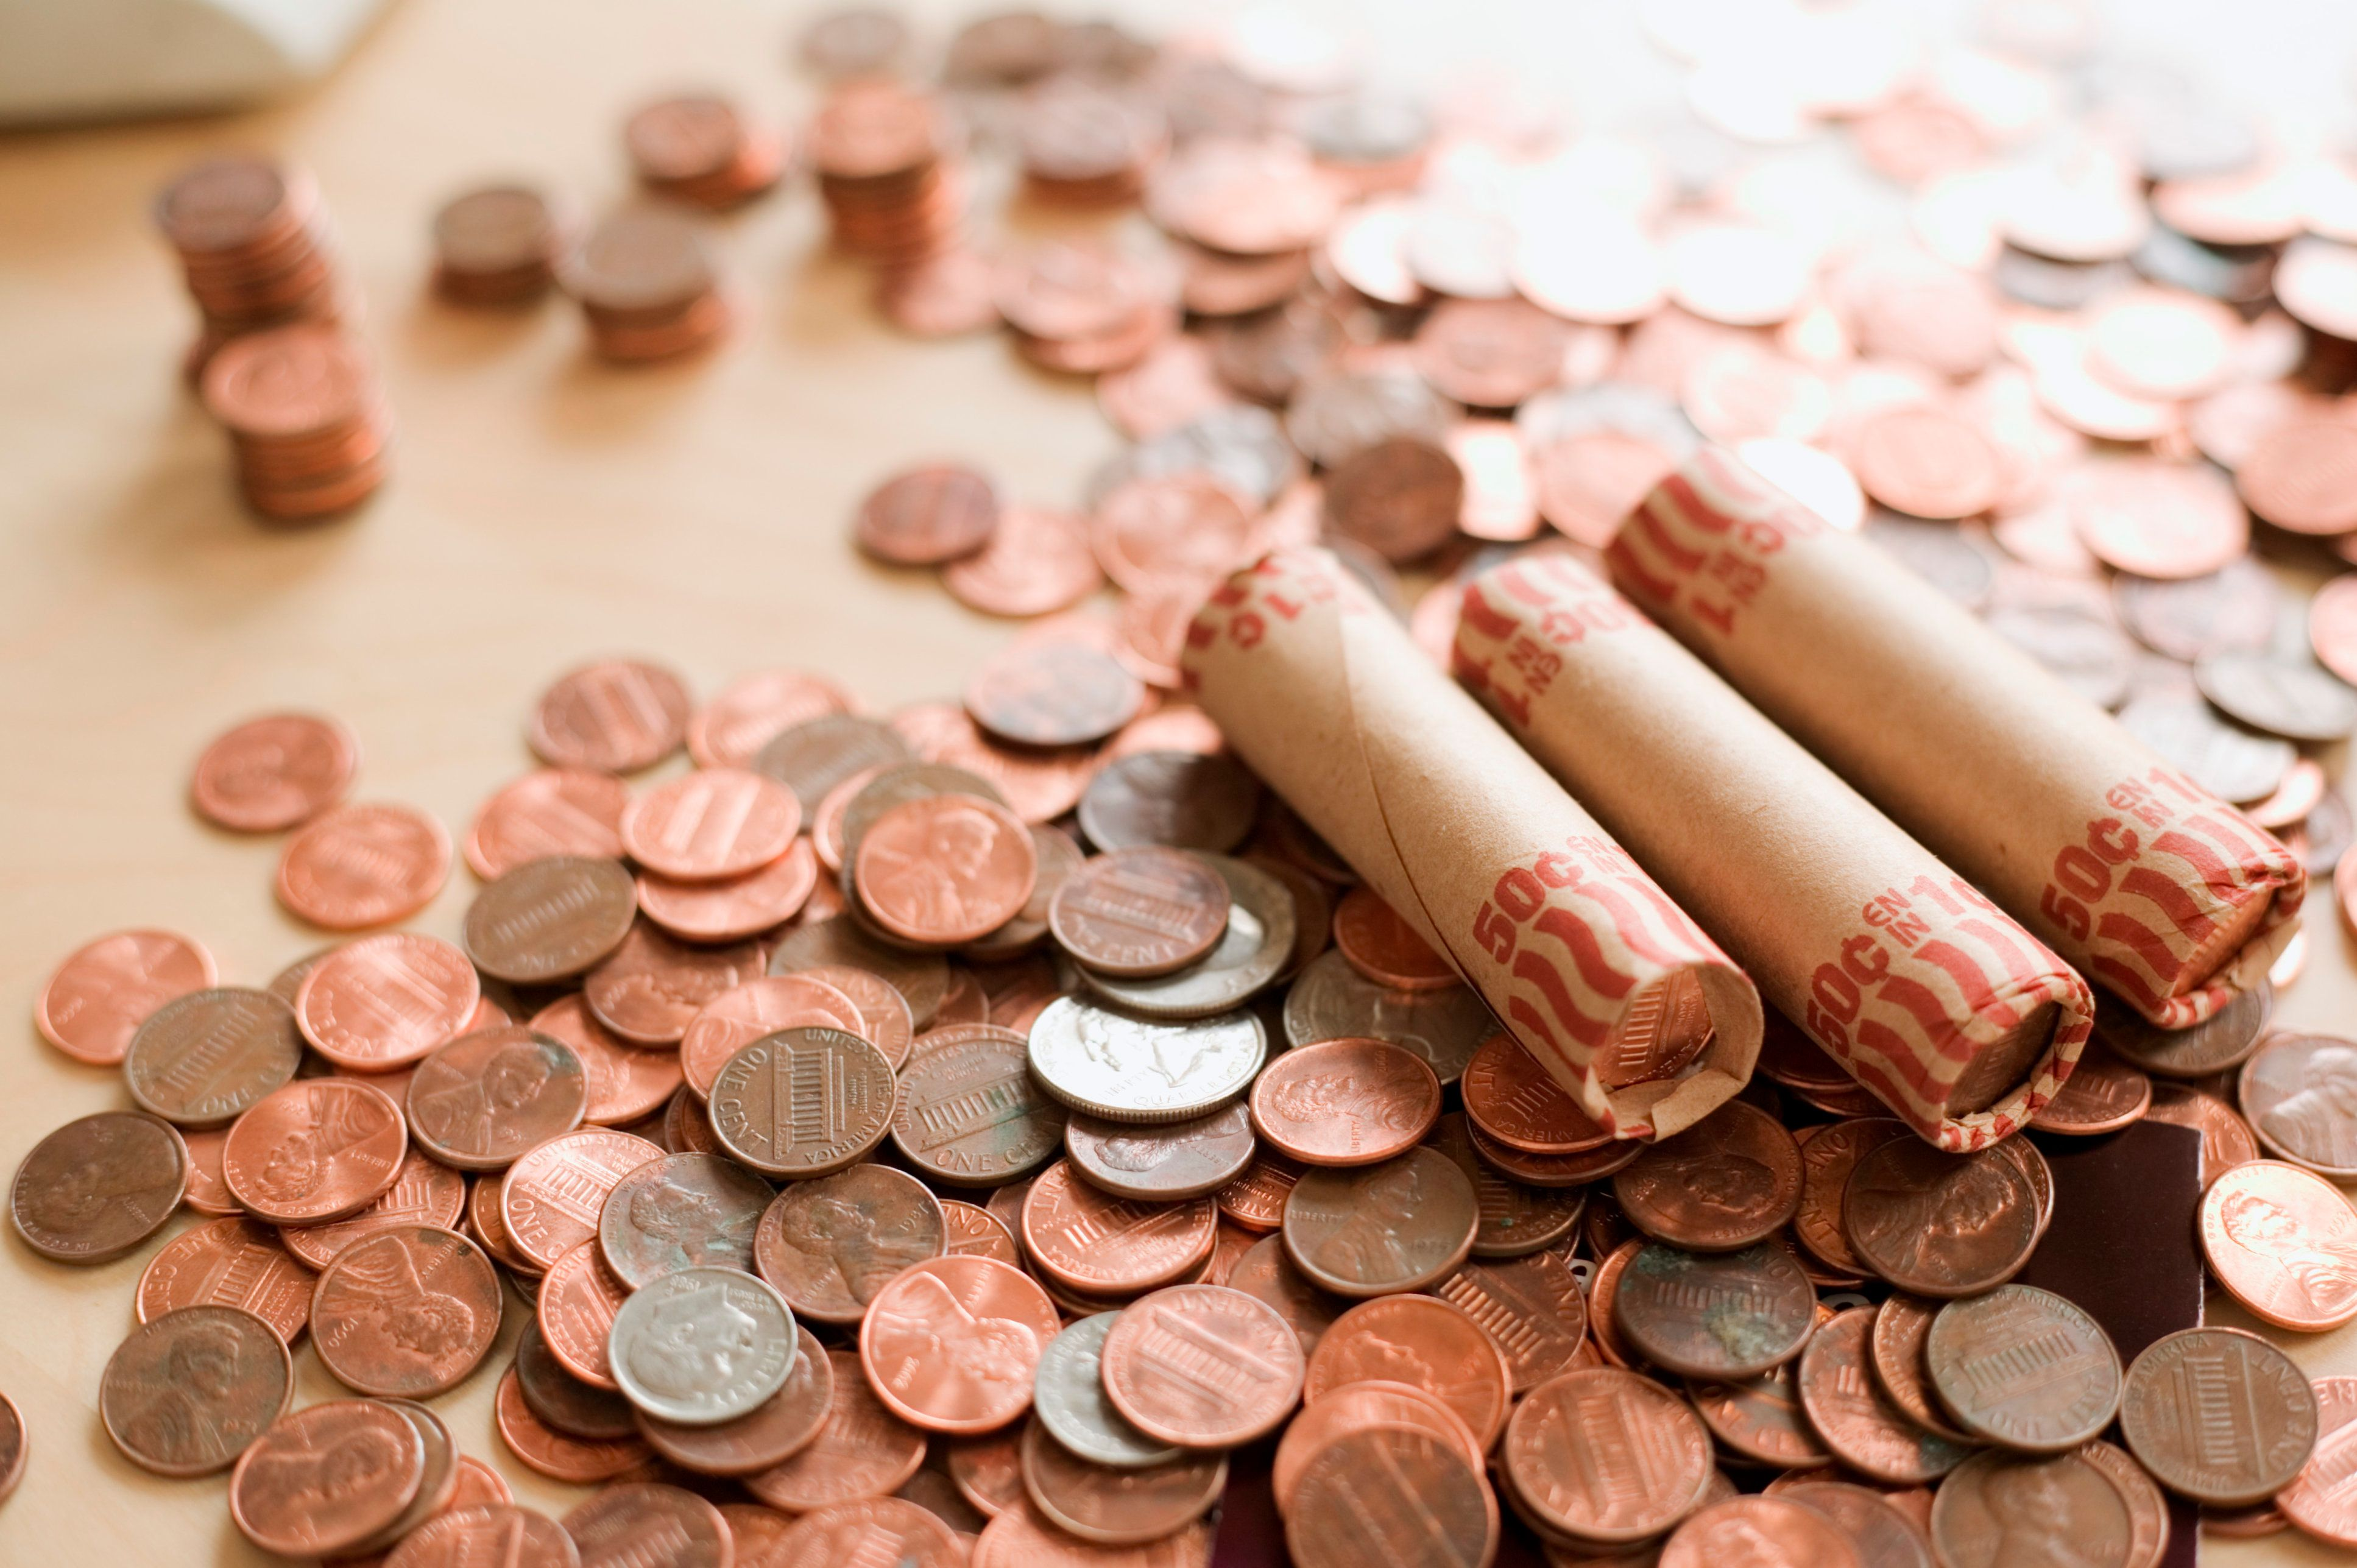 Coins and rolled coins